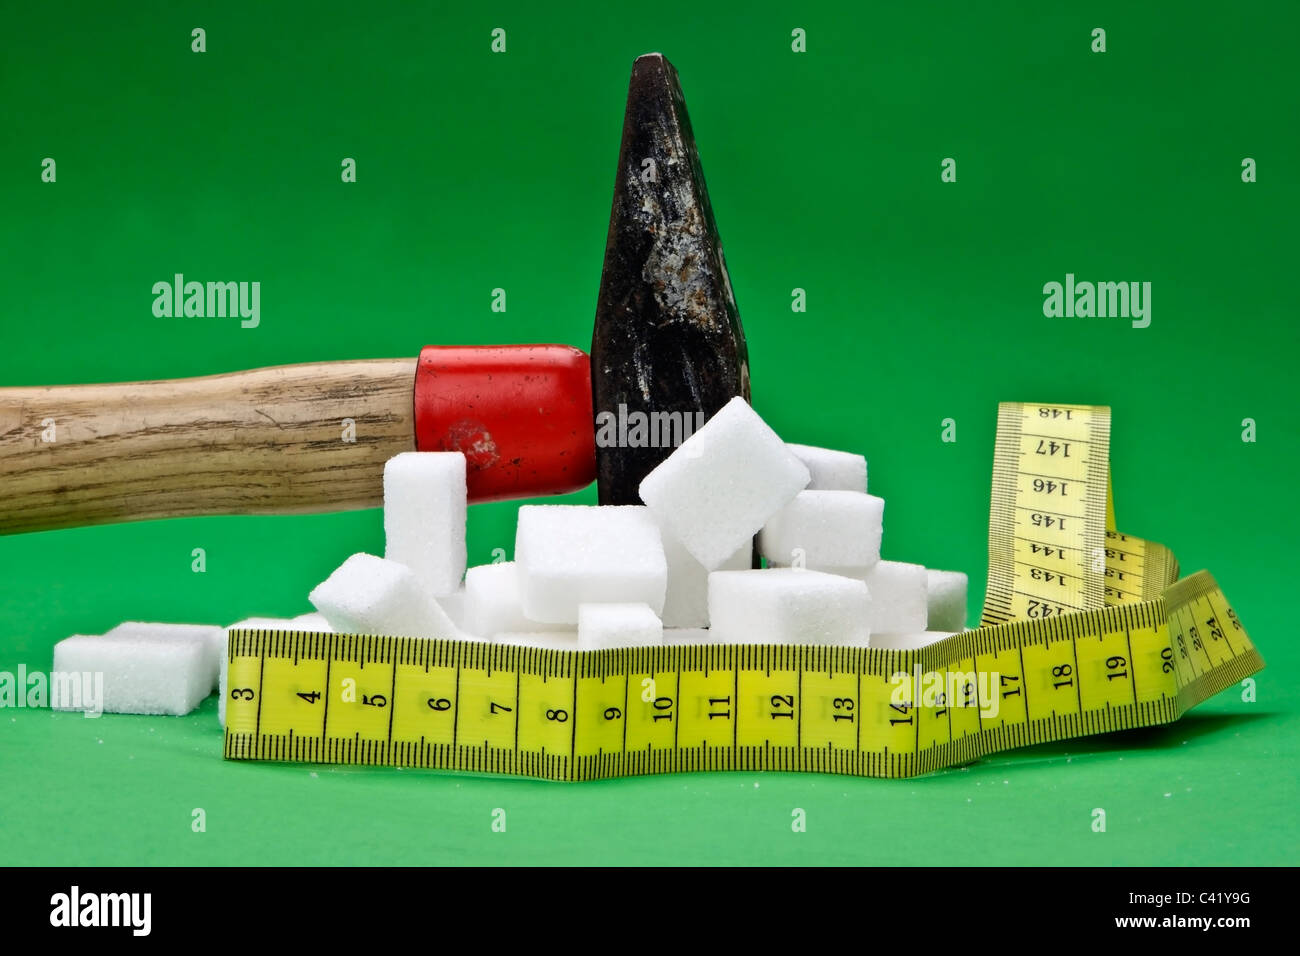 a hammer which is disturbing sugar cubes for a healthier nutrition in the future - Stock Image